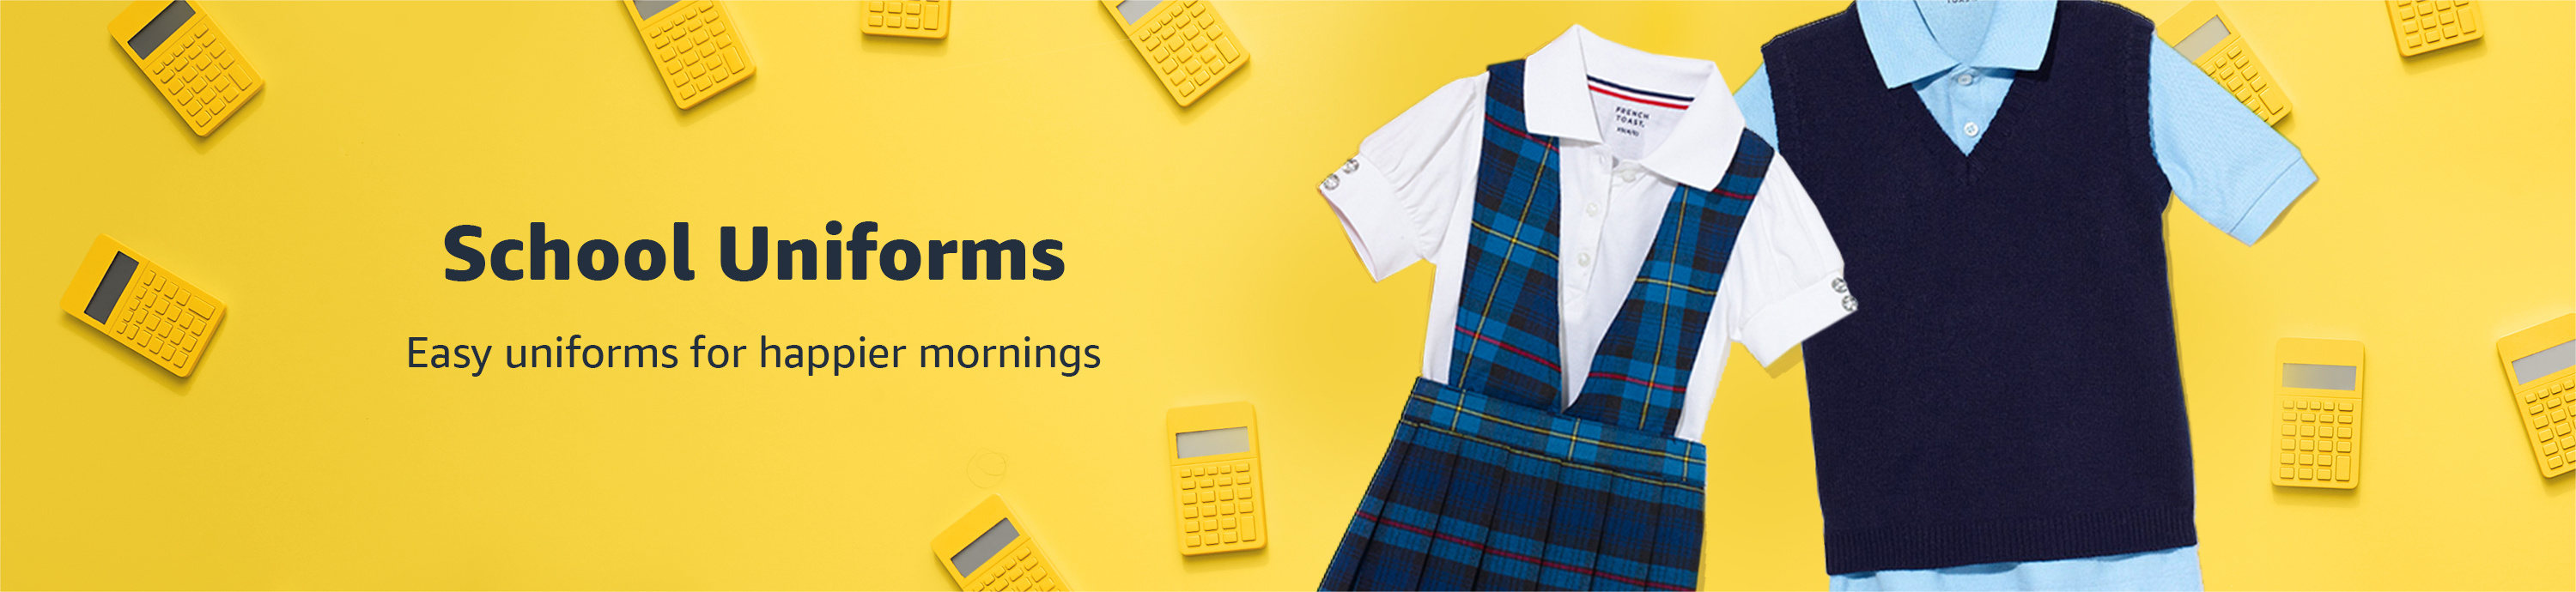 School Uniforms | Amazon com